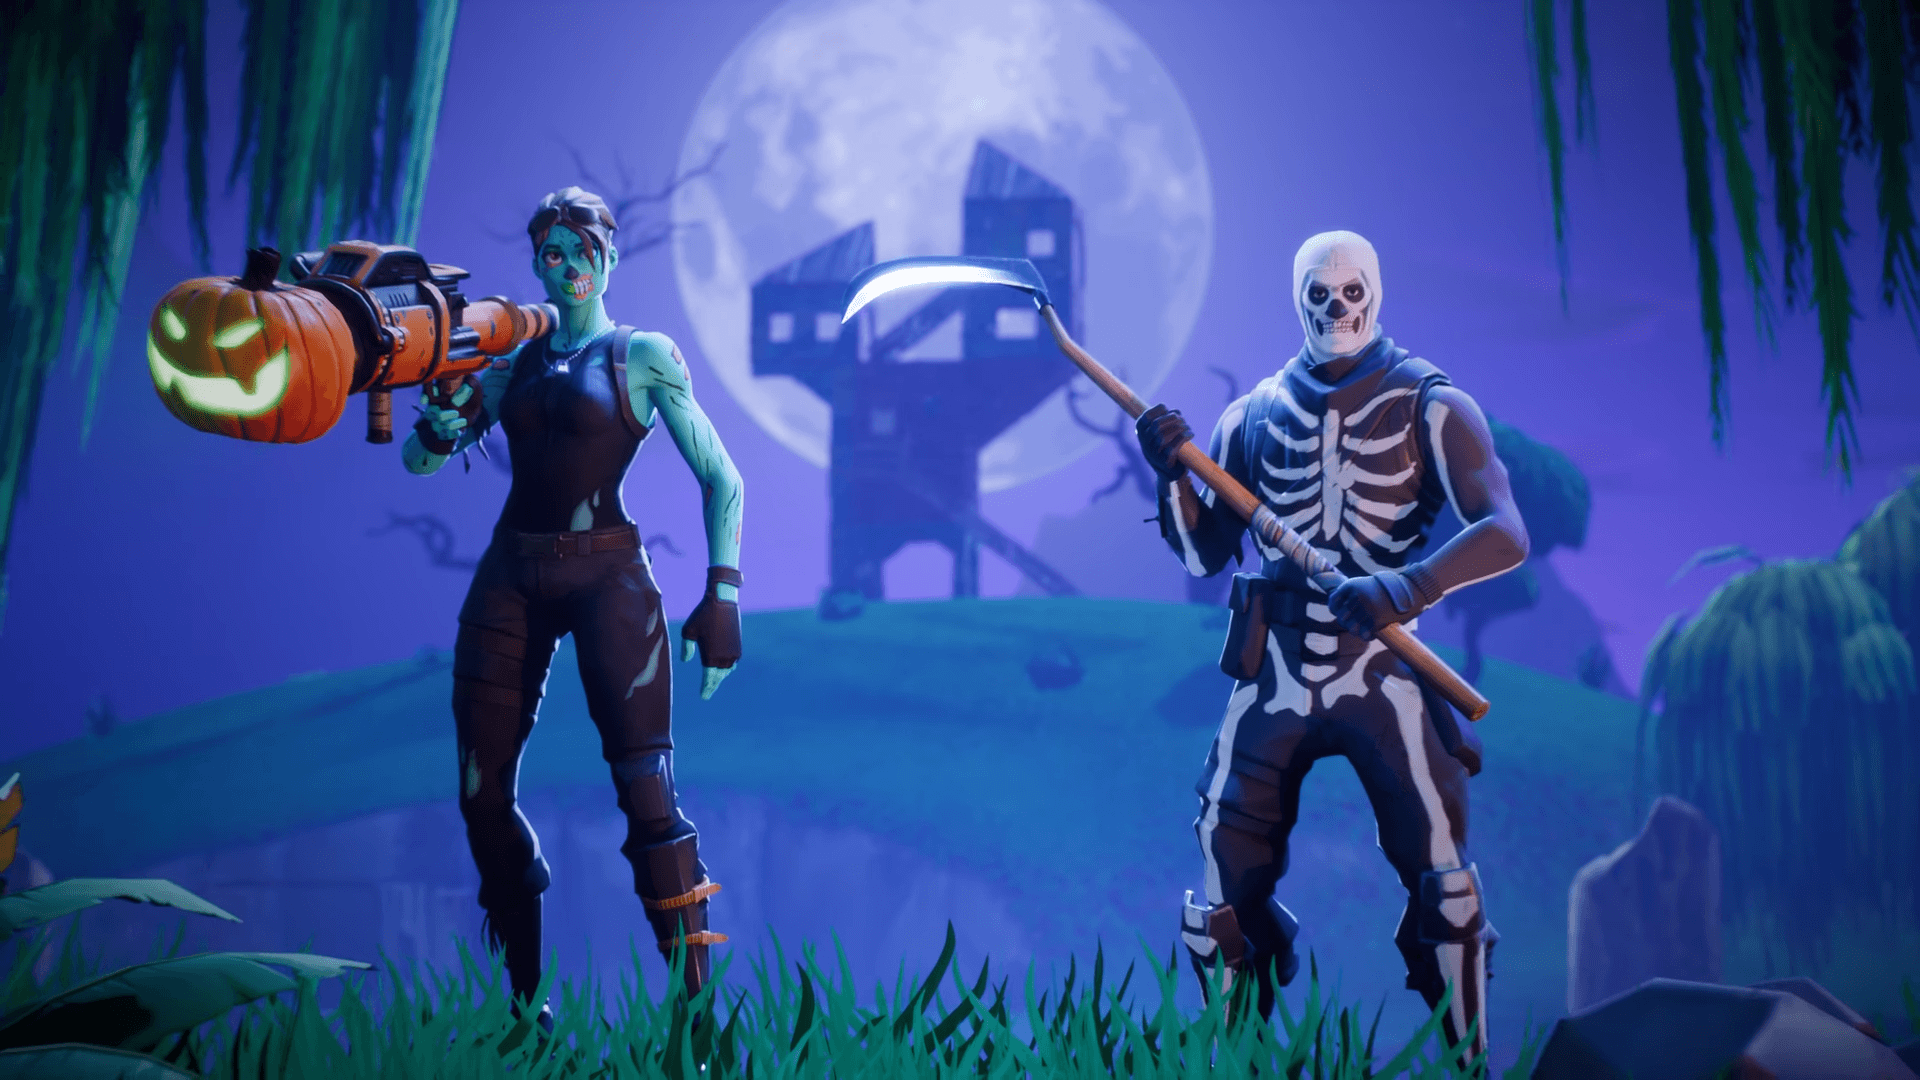 Cool Fortnite Wallpapers Top Free Cool Fortnite Backgrounds Wallpaperaccess Ghoul Trooper Background Images Wallpapers Fortnite